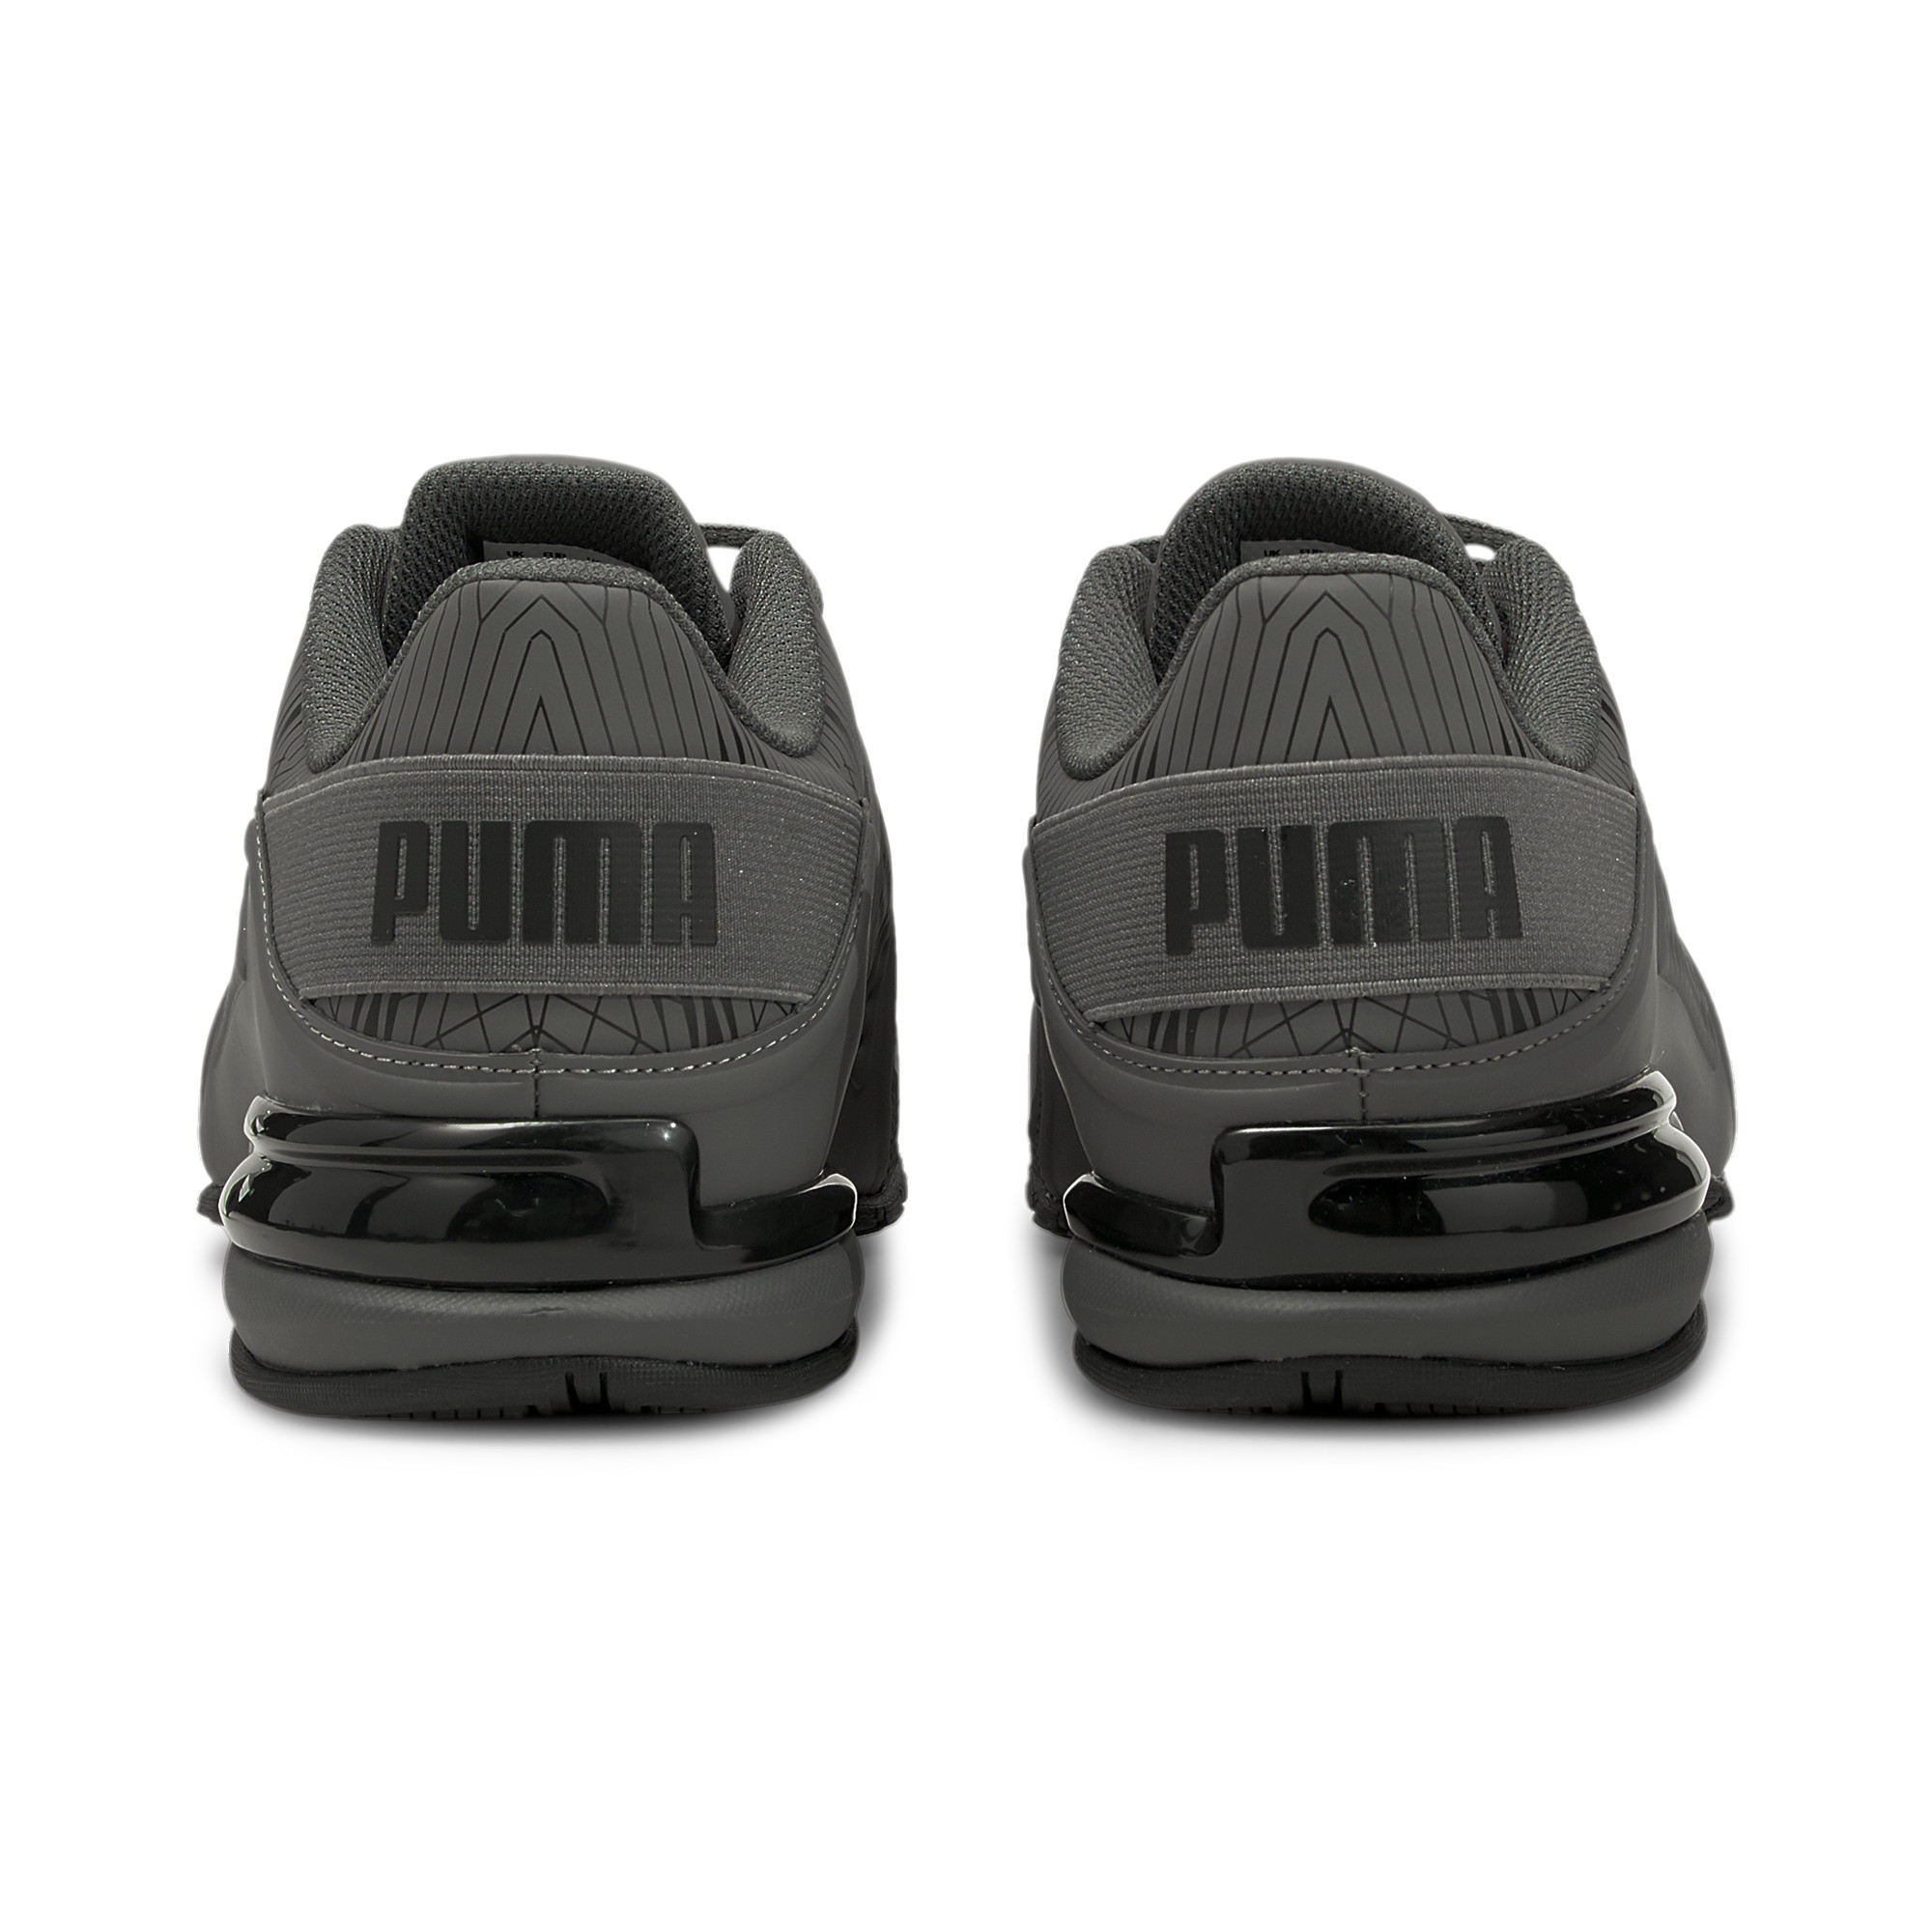 PUMA-Men-039-s-Viz-Runner-Graphic-Sneakers thumbnail 15